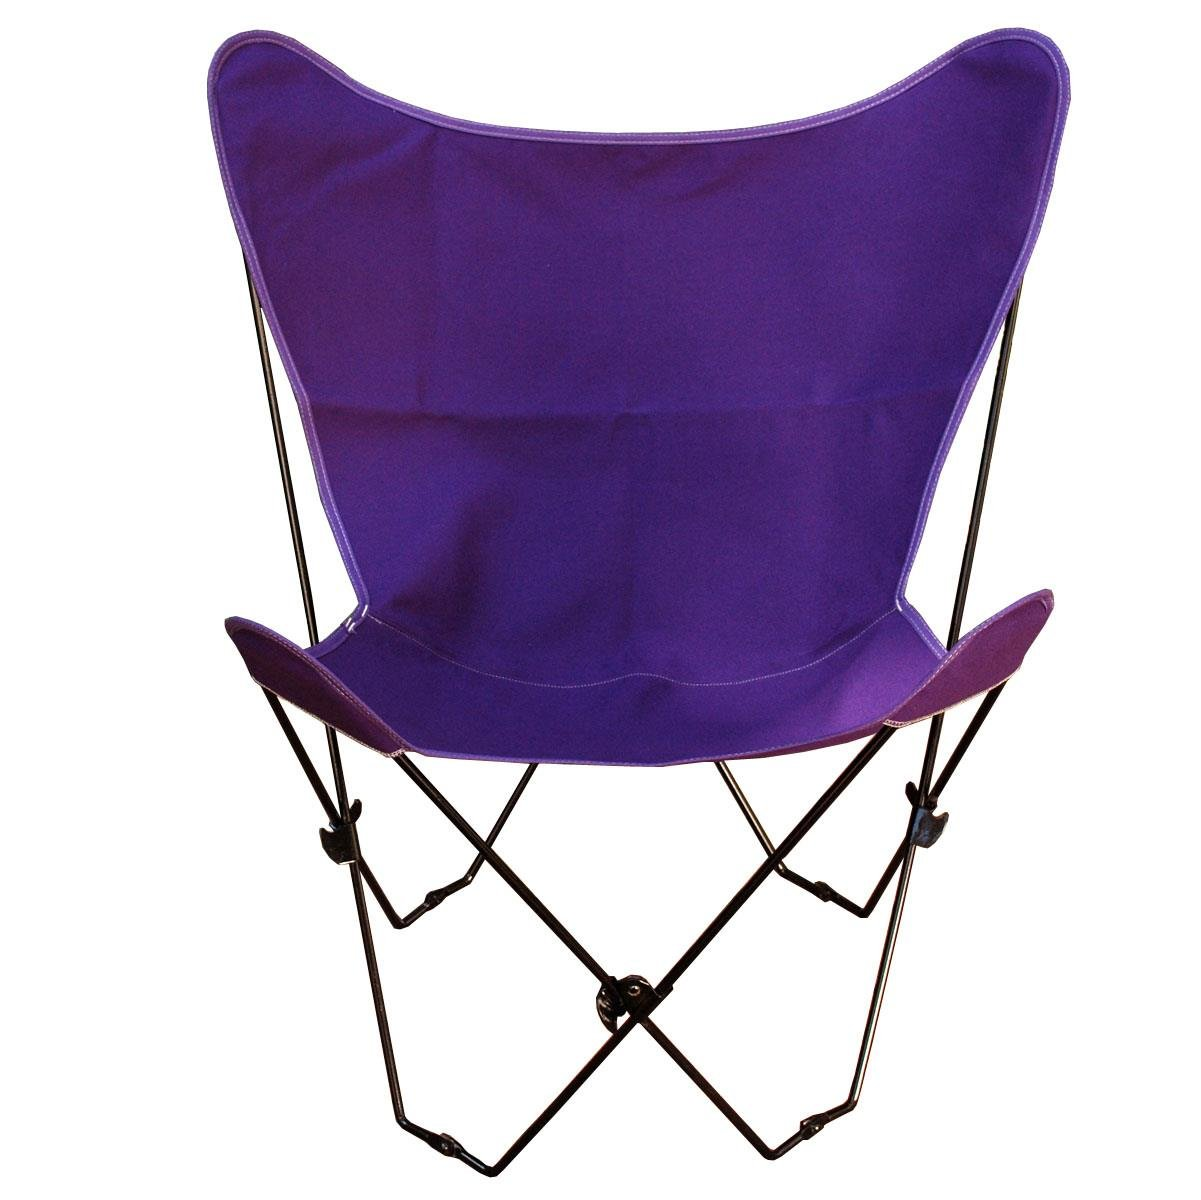 Algoma Net Butterfly Chair and Cover Combination w/Black Frame